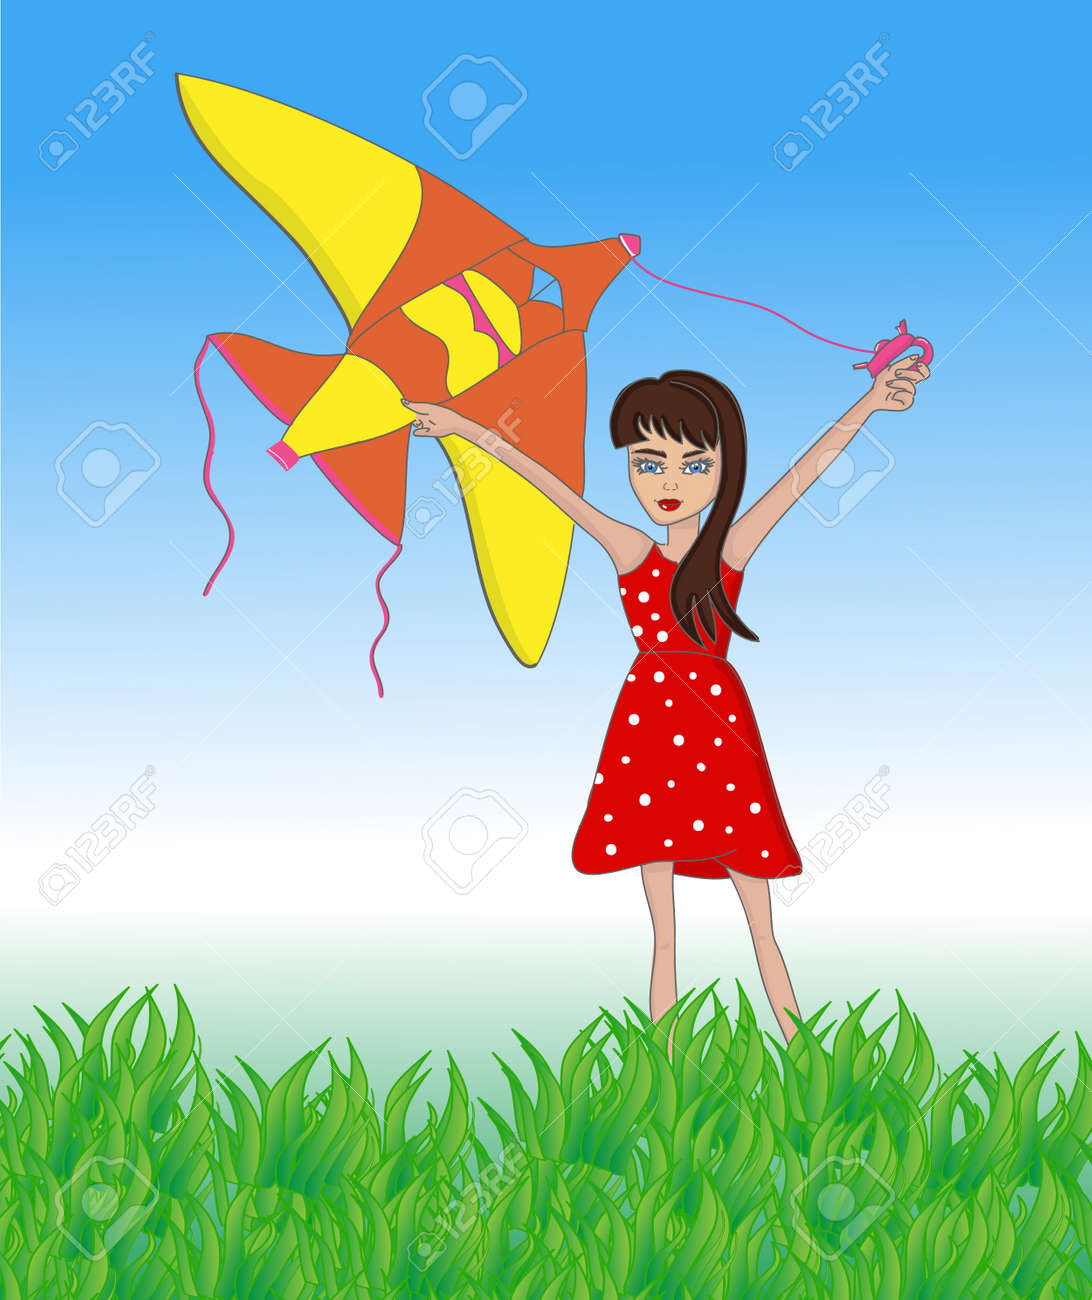 Kid with flying kite in field with blue sky outside in summer time. Vector illustration cartoons of child girl playing in park sun day. - 164997156